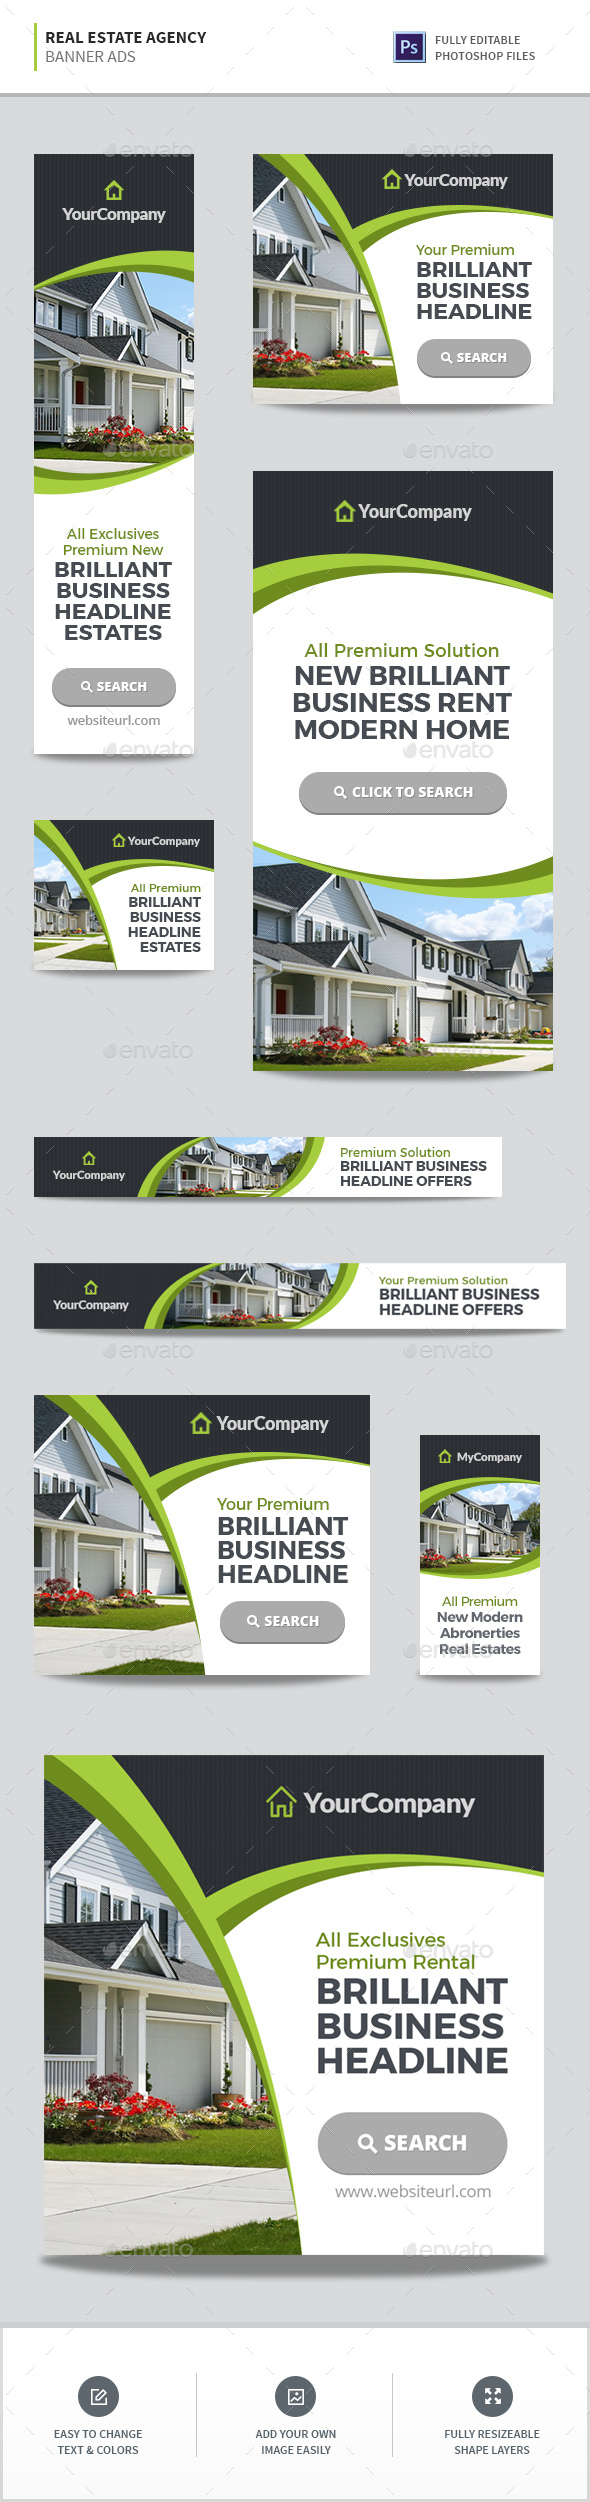 Real Estate Agency Banners - Banners & Ads Web Elements